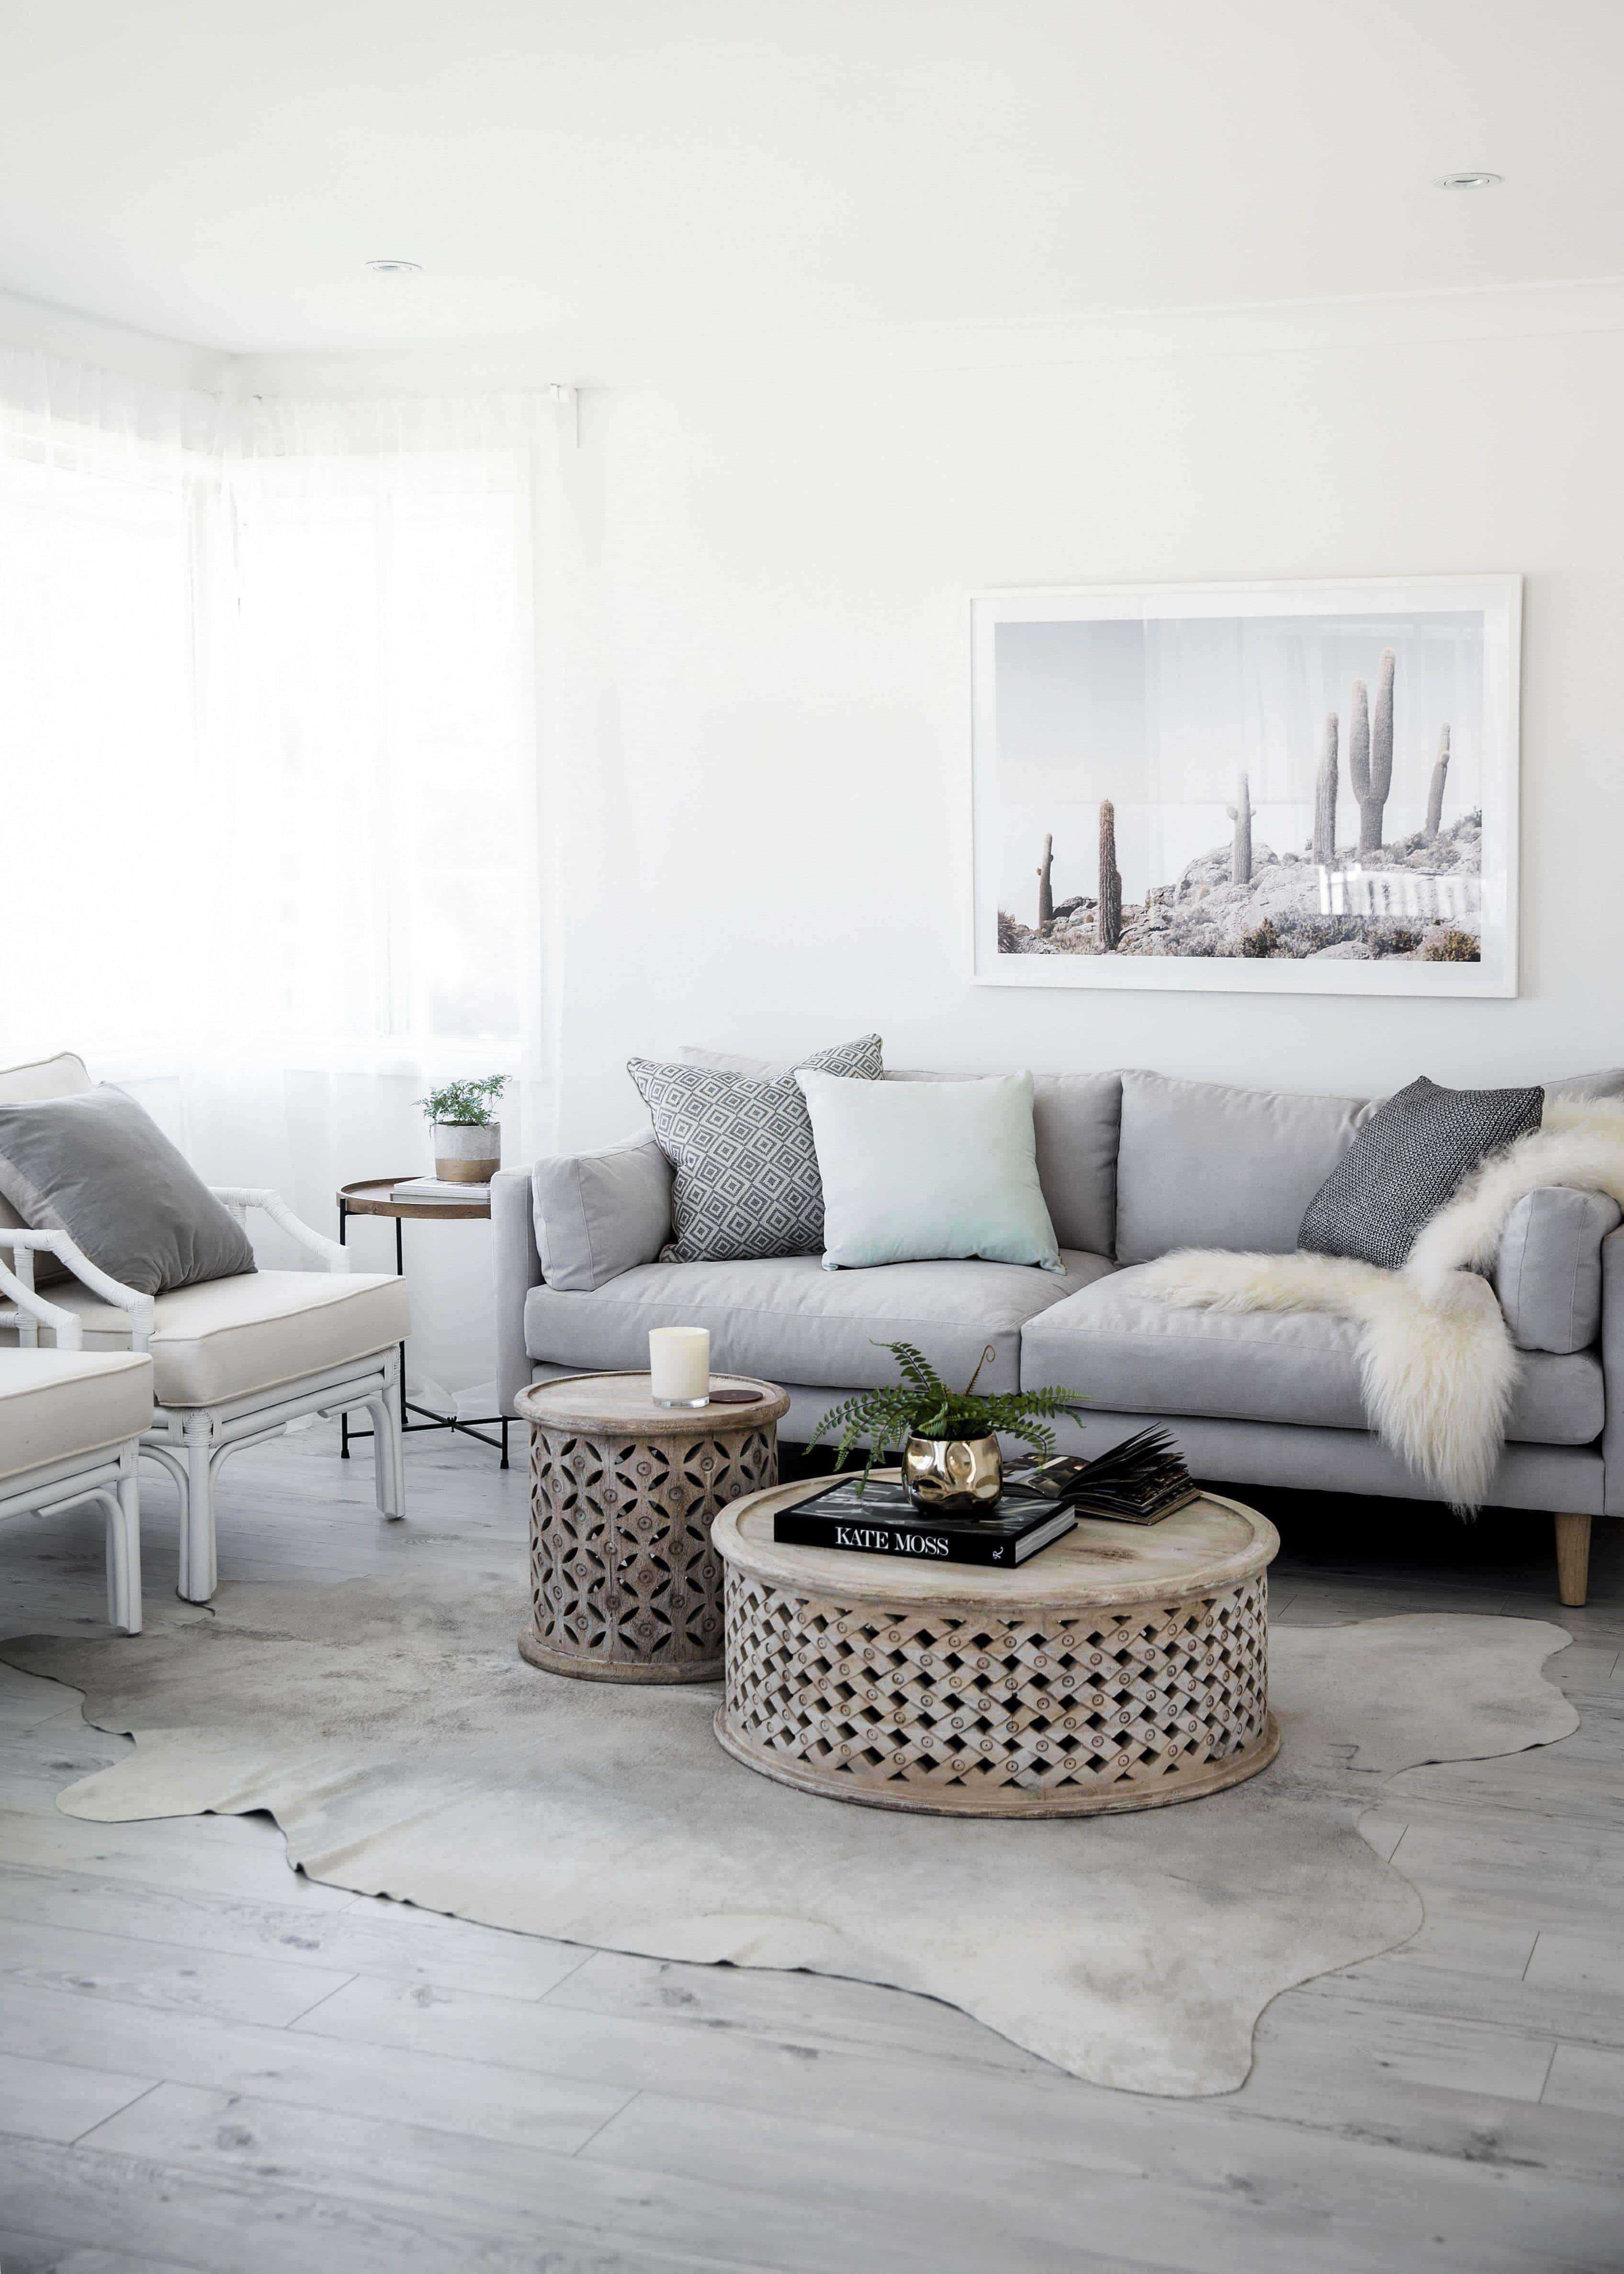 most expensive vase of amazing home decor accents flair home decorating ideas within coffee table decorative accents home decor with pretty living room center tables new teal couch 0d